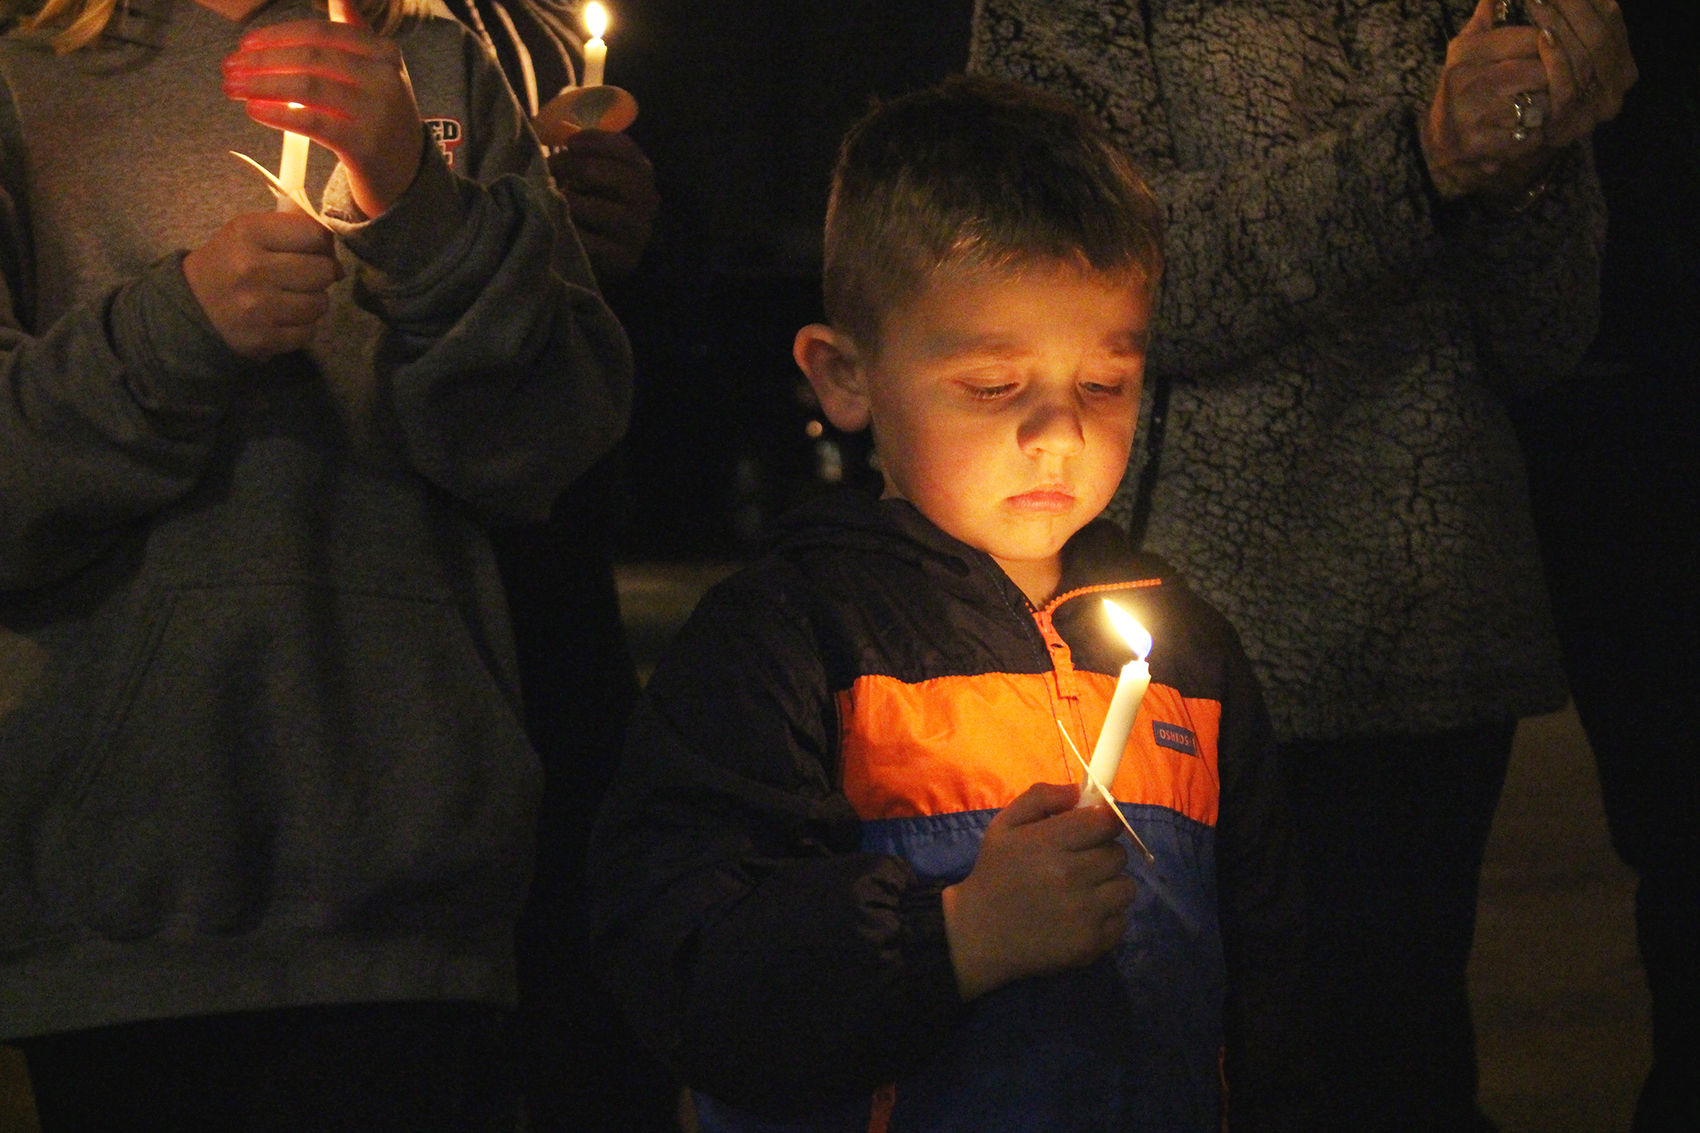 A candlelight vigil was held during a bench dedication in honor of James F. Creason at Friday's Christmas Caroling Event in Bowman, and the candle shines here on Creason's great-grandson, Easton Moss. (Photo by Scoggins)